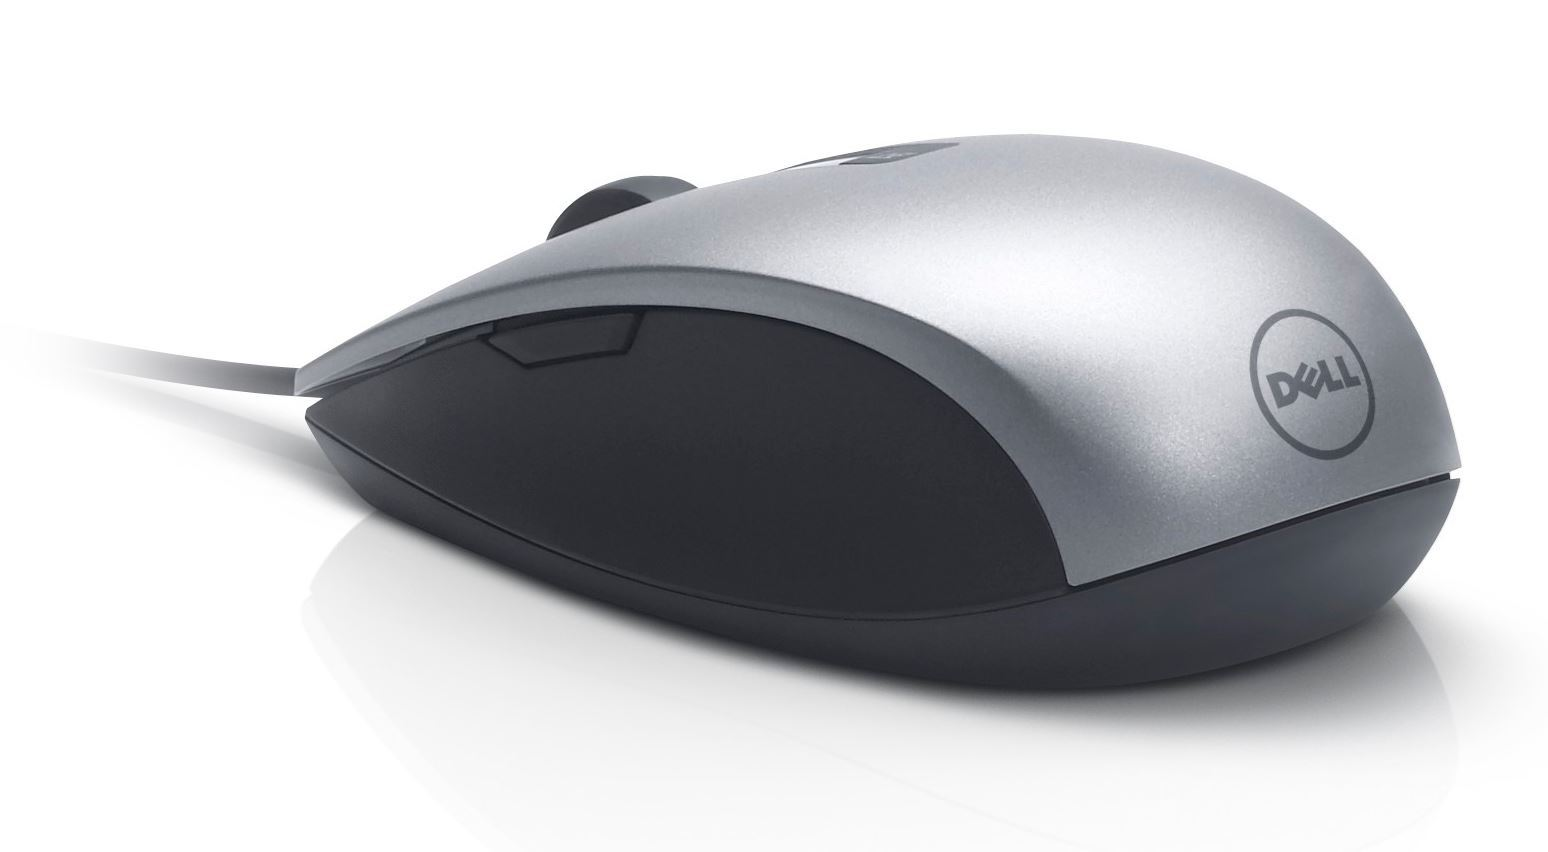 dell 6 button laser mouse manual